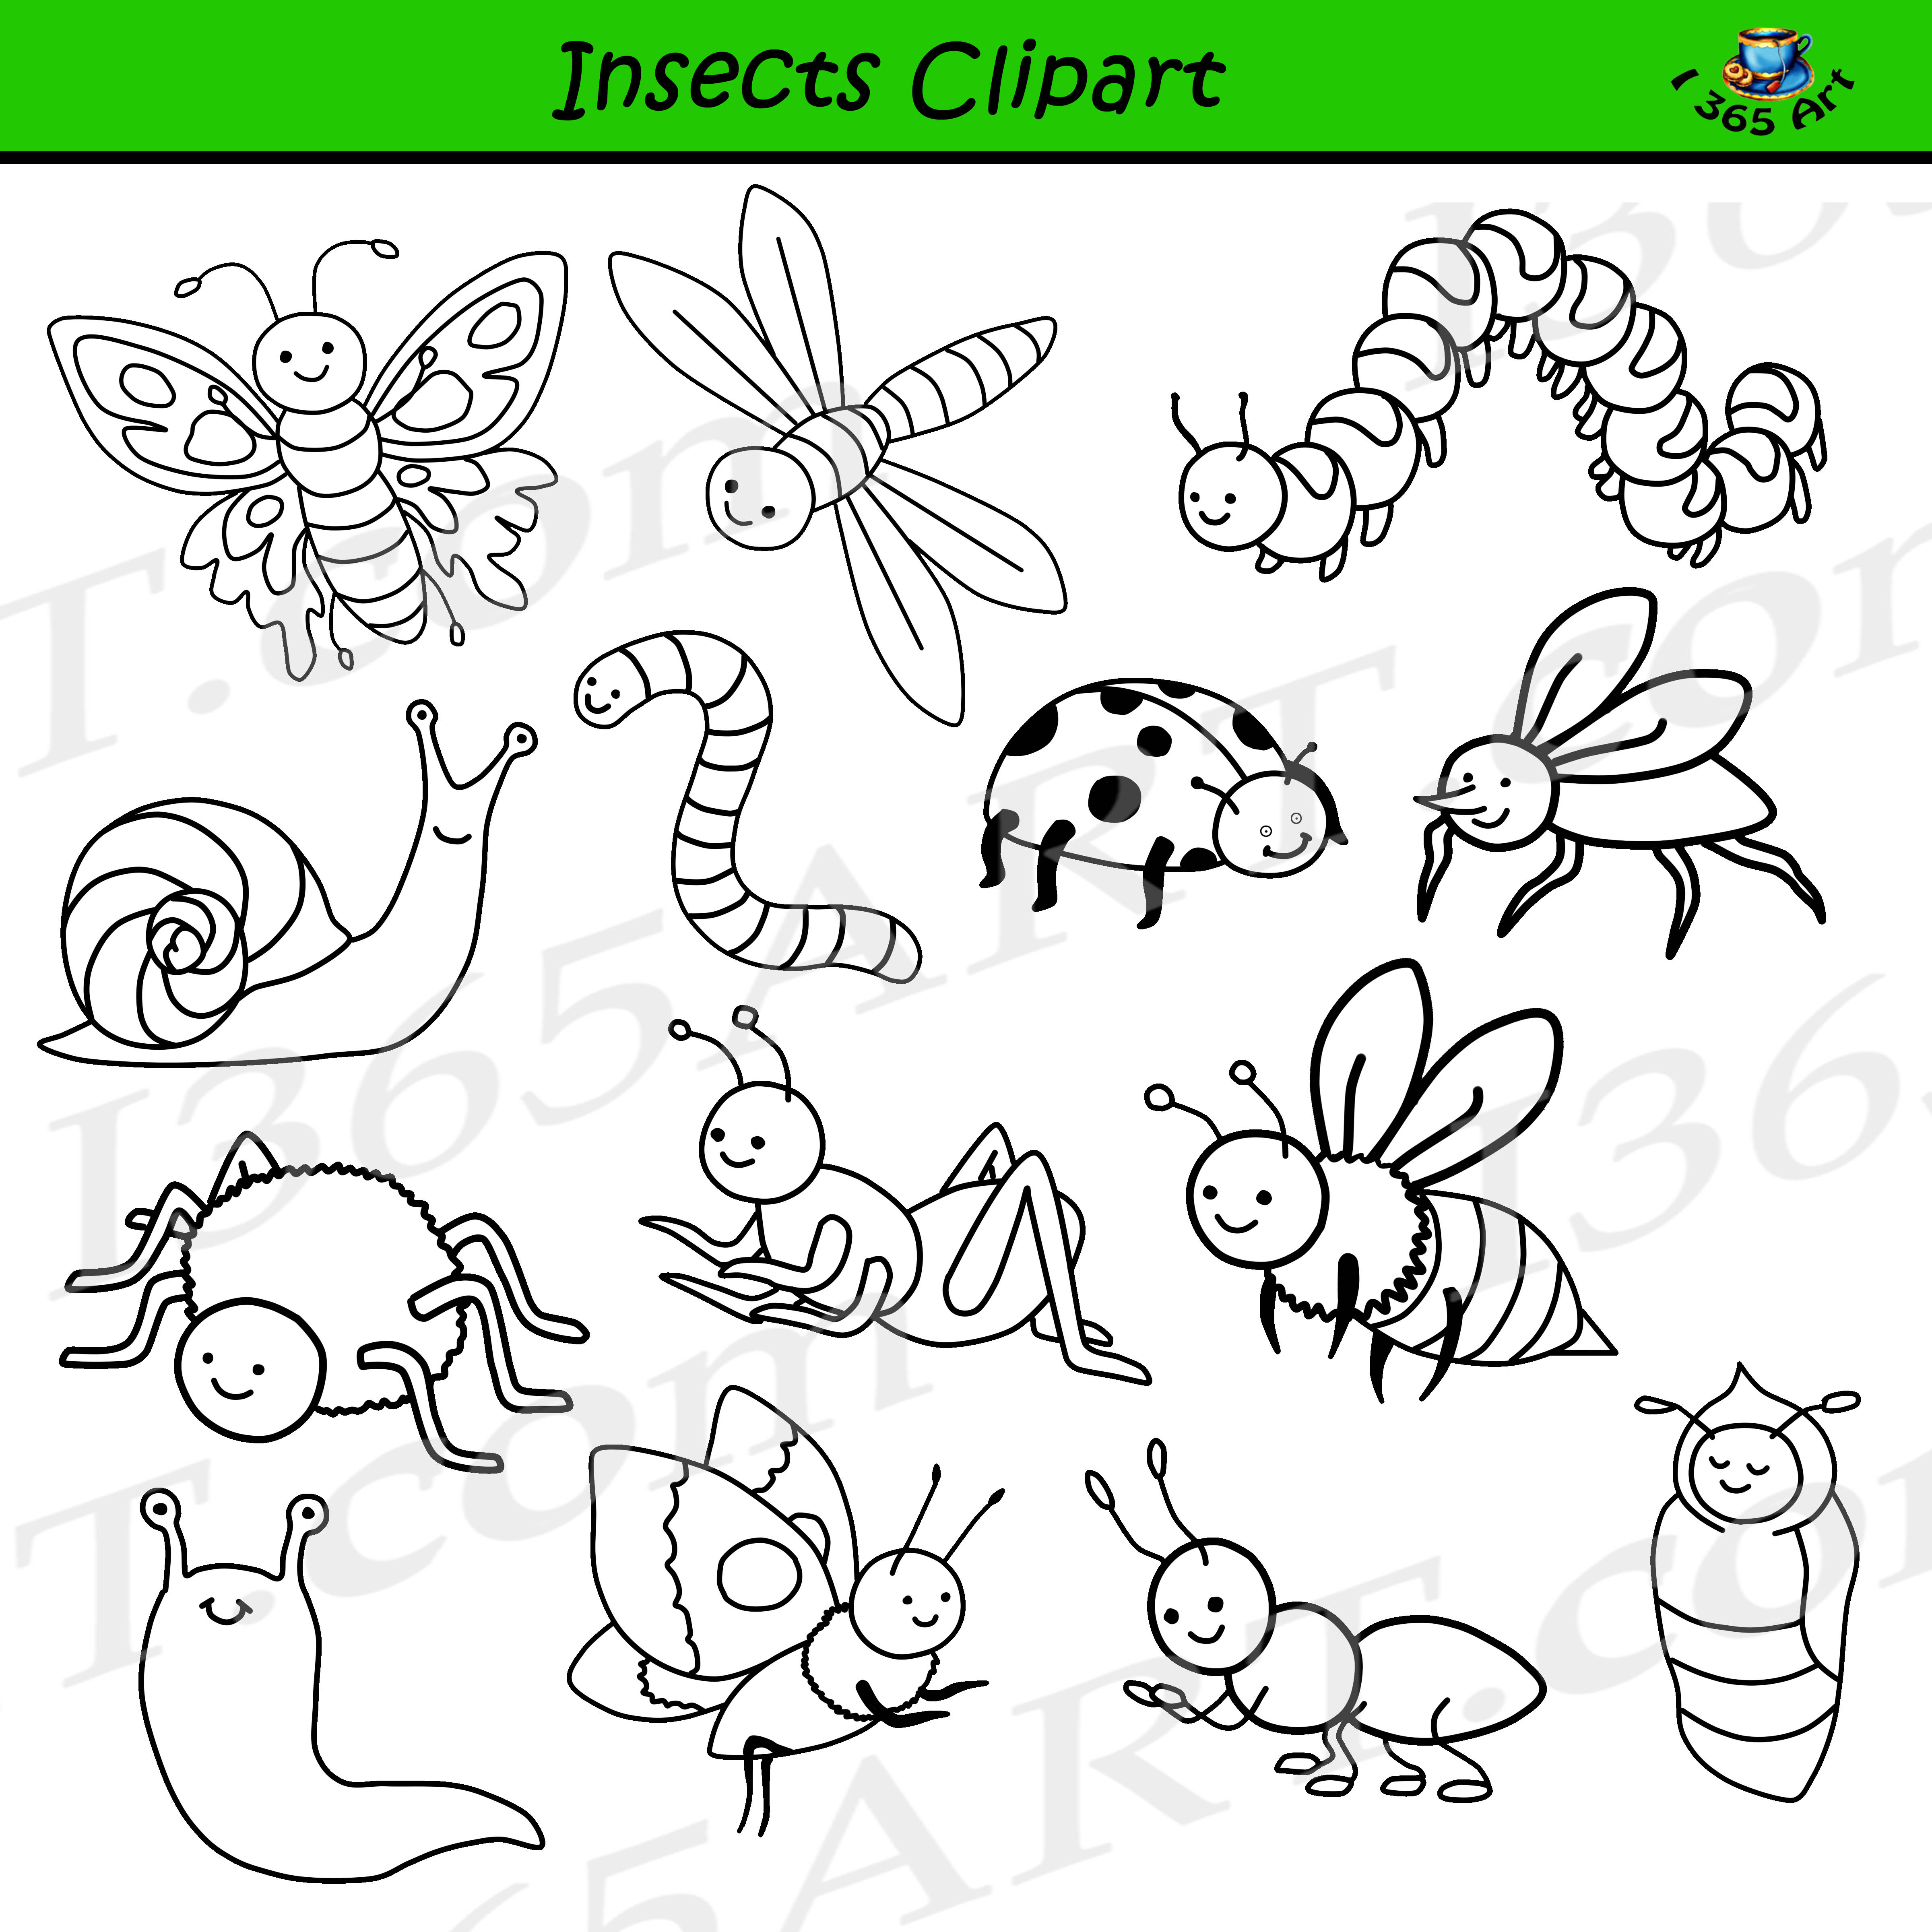 Insect Clipart Images.